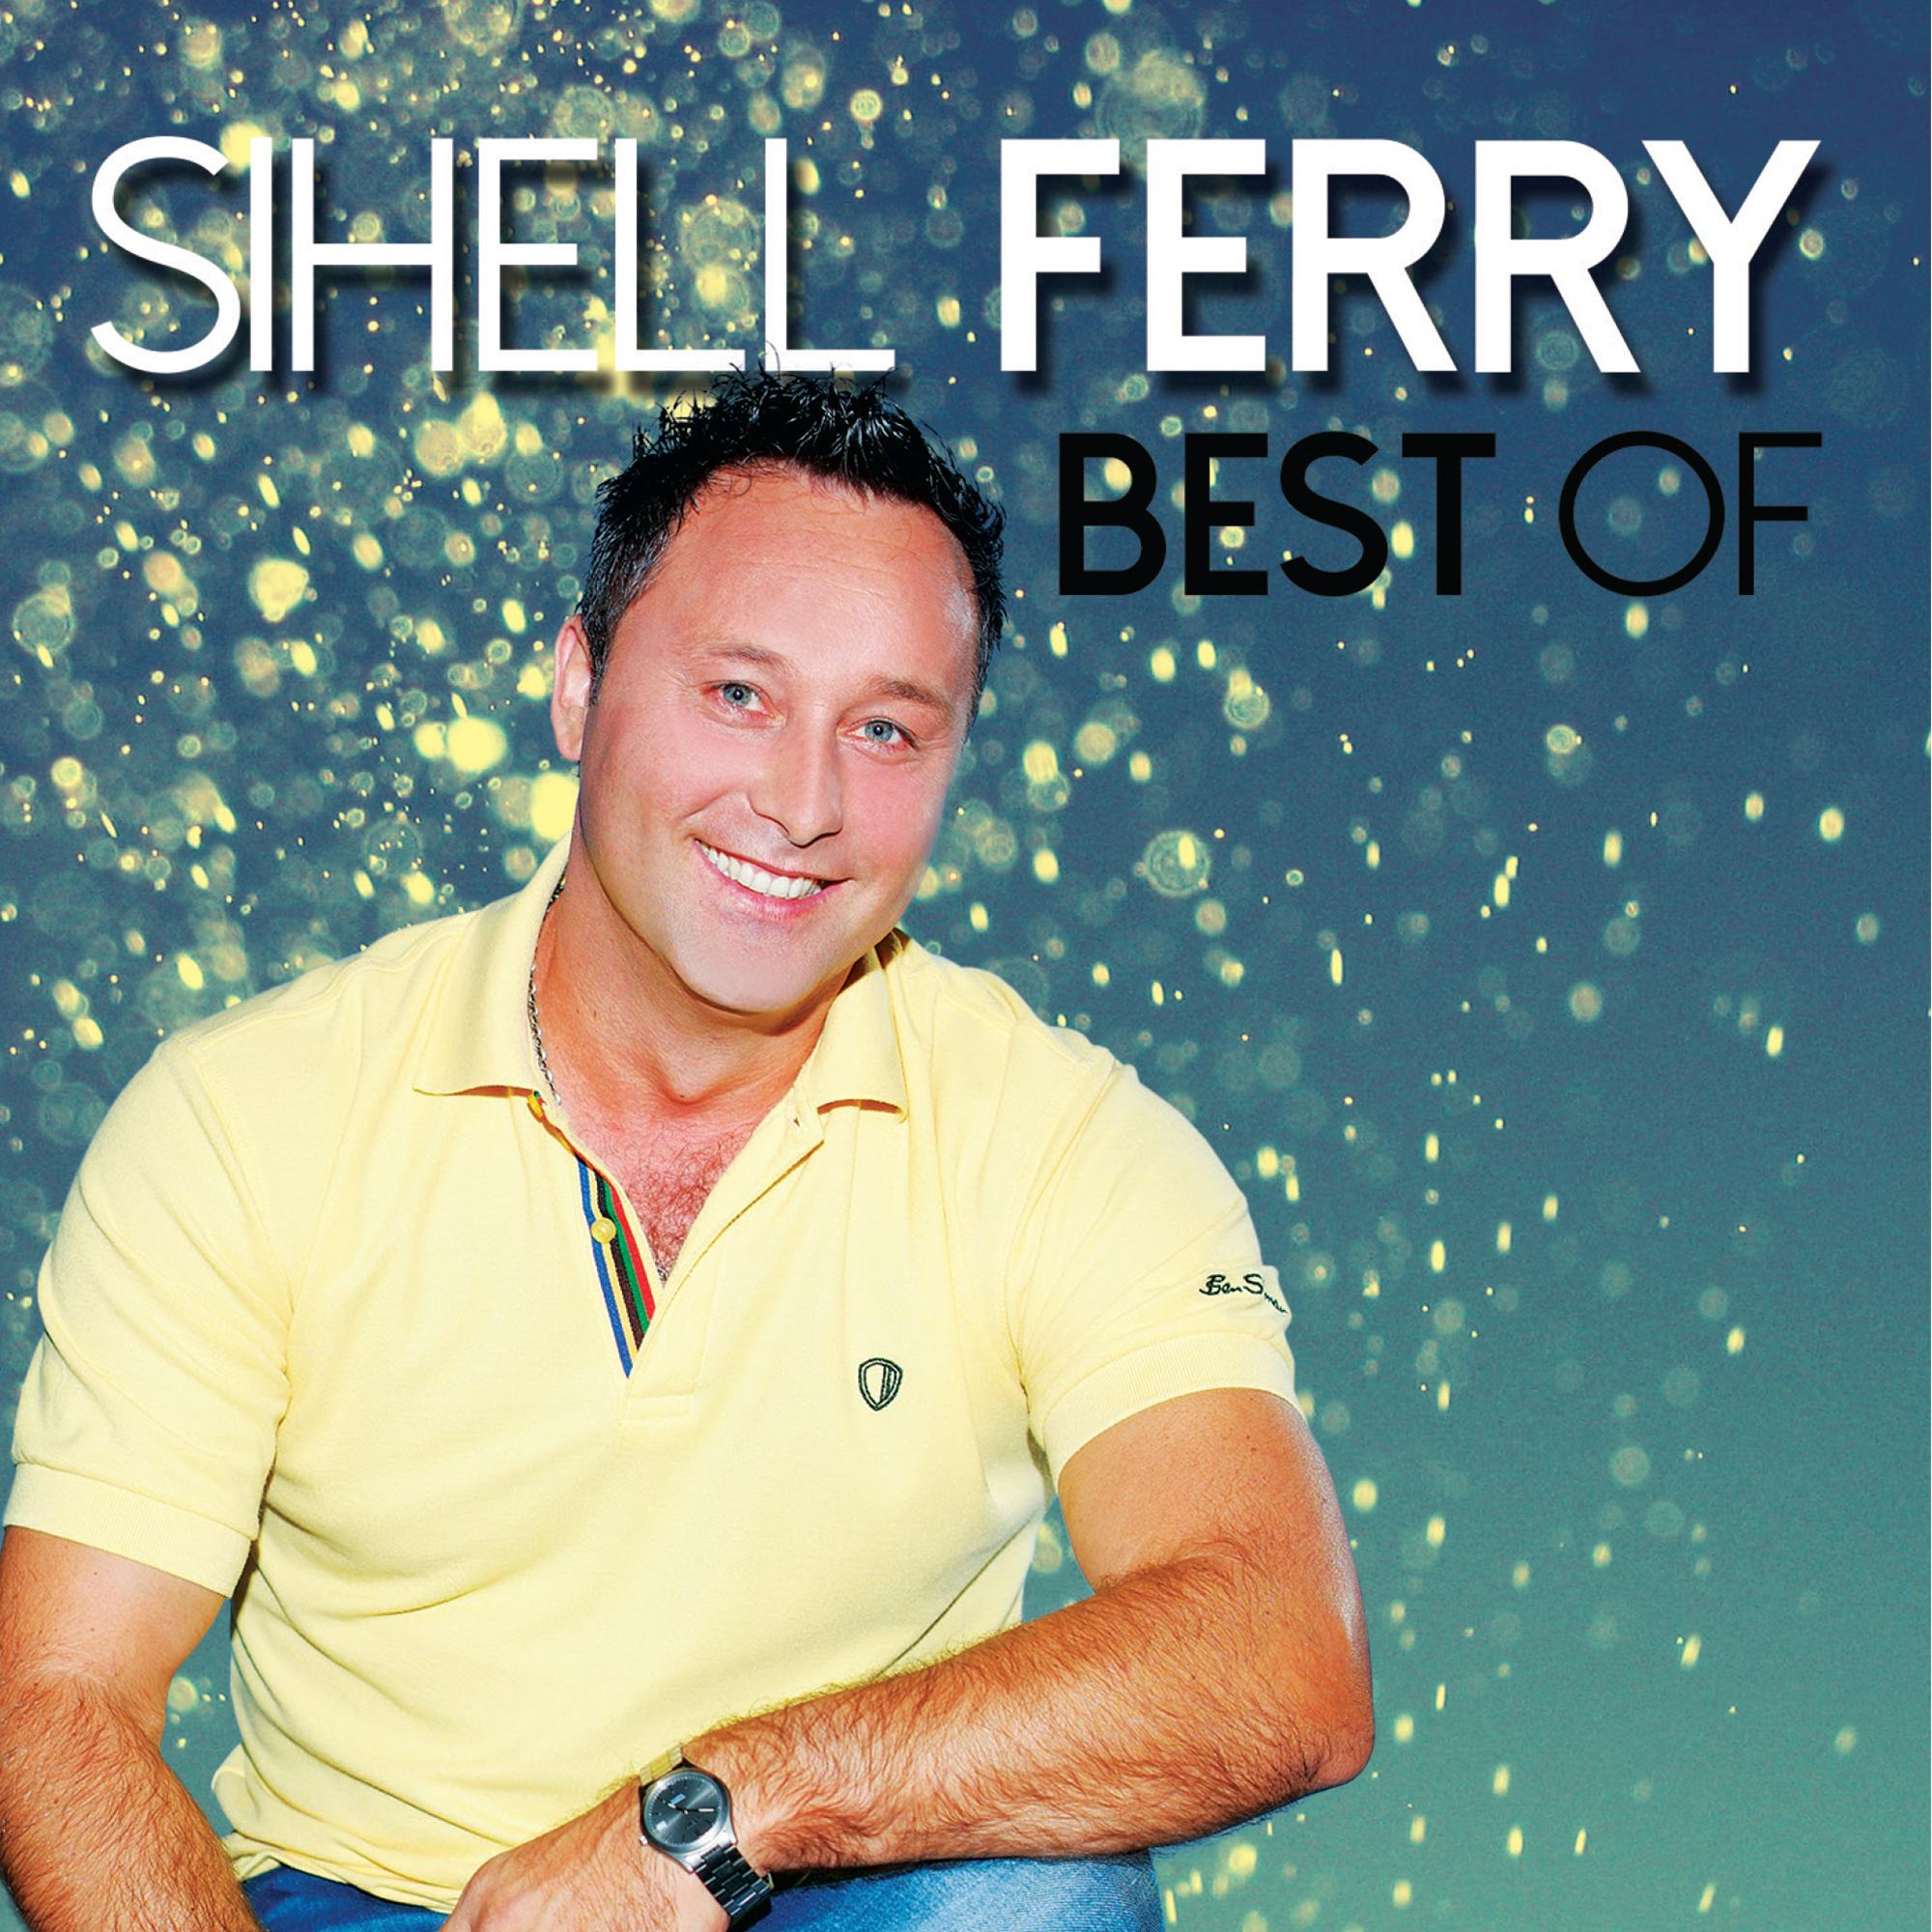 SIHELL FERRY - SIHELL FERRY BEST OF - CD -